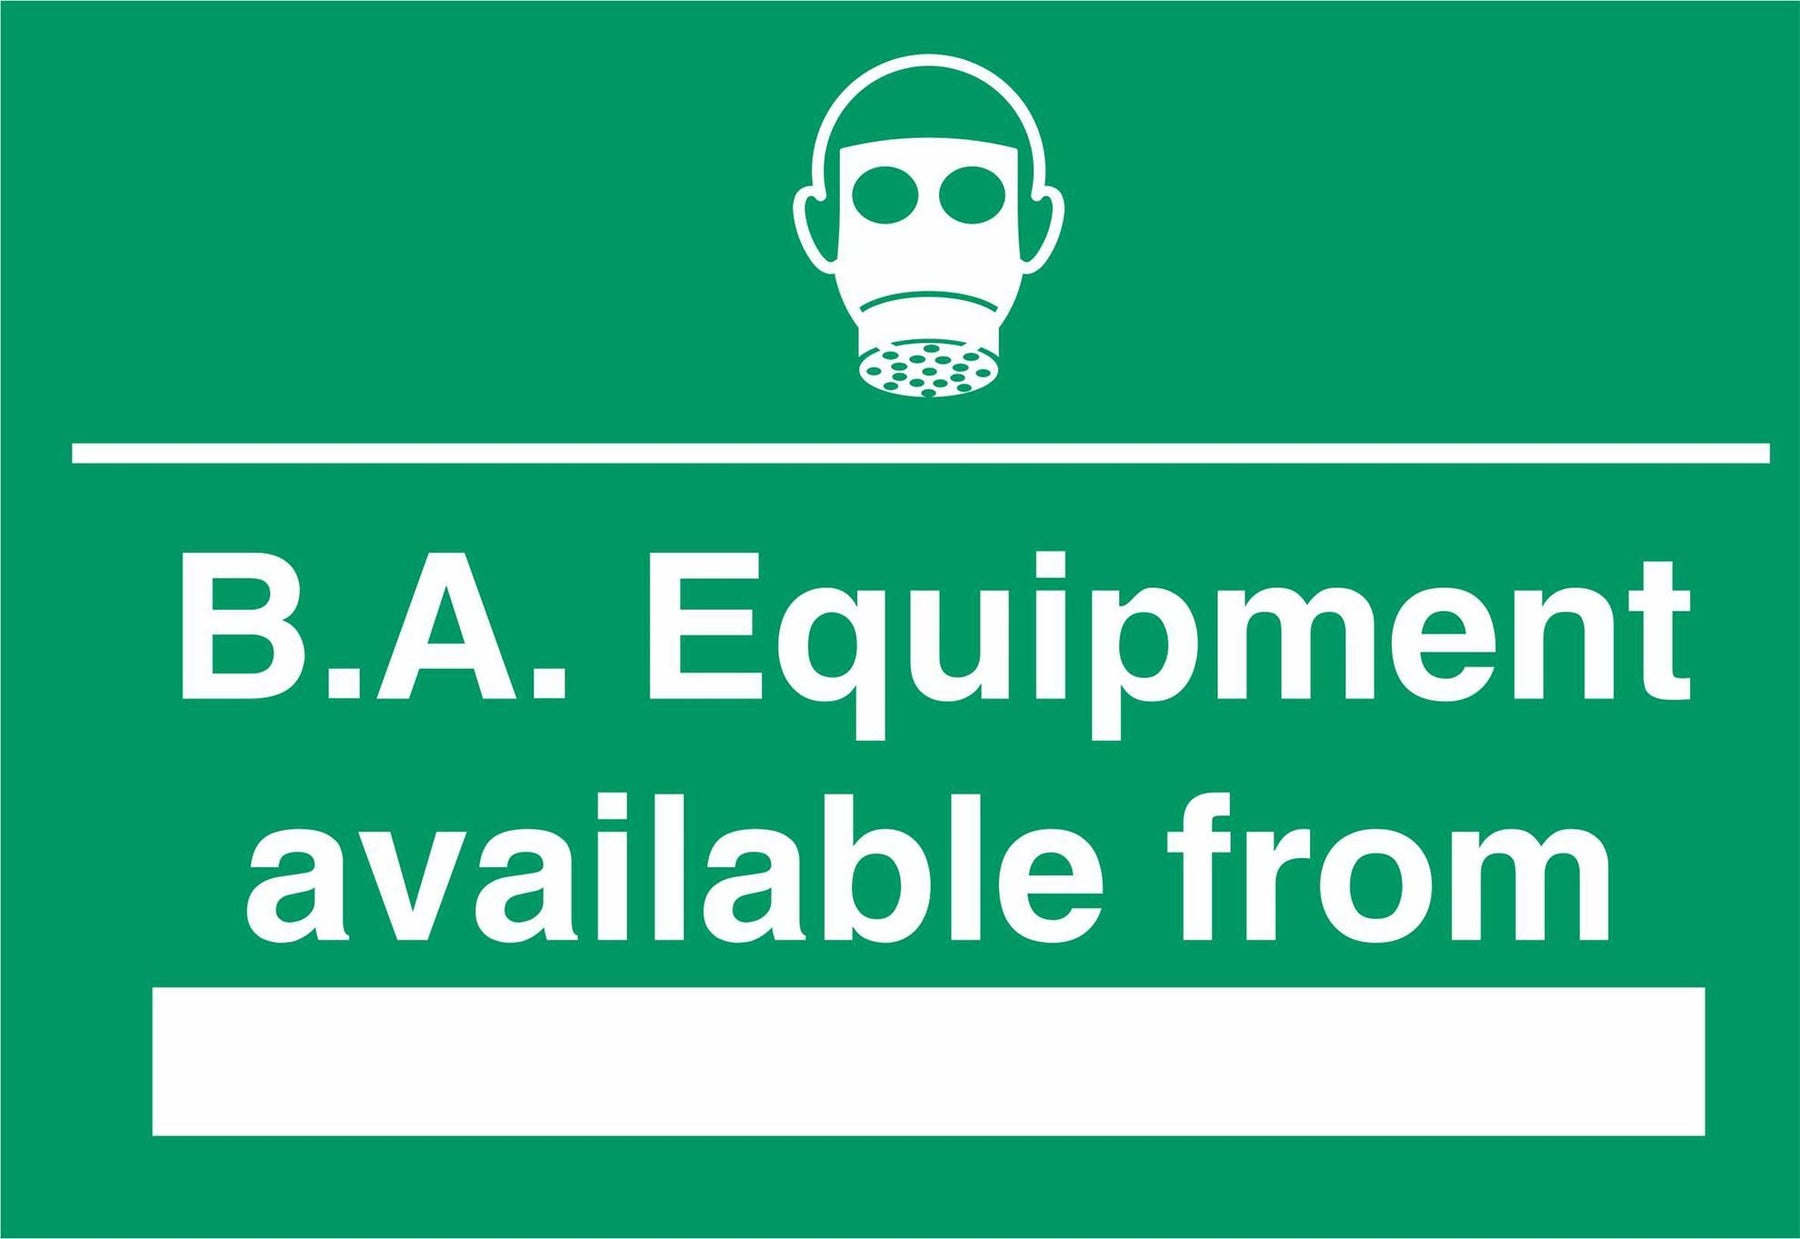 B.A. Equipment available from